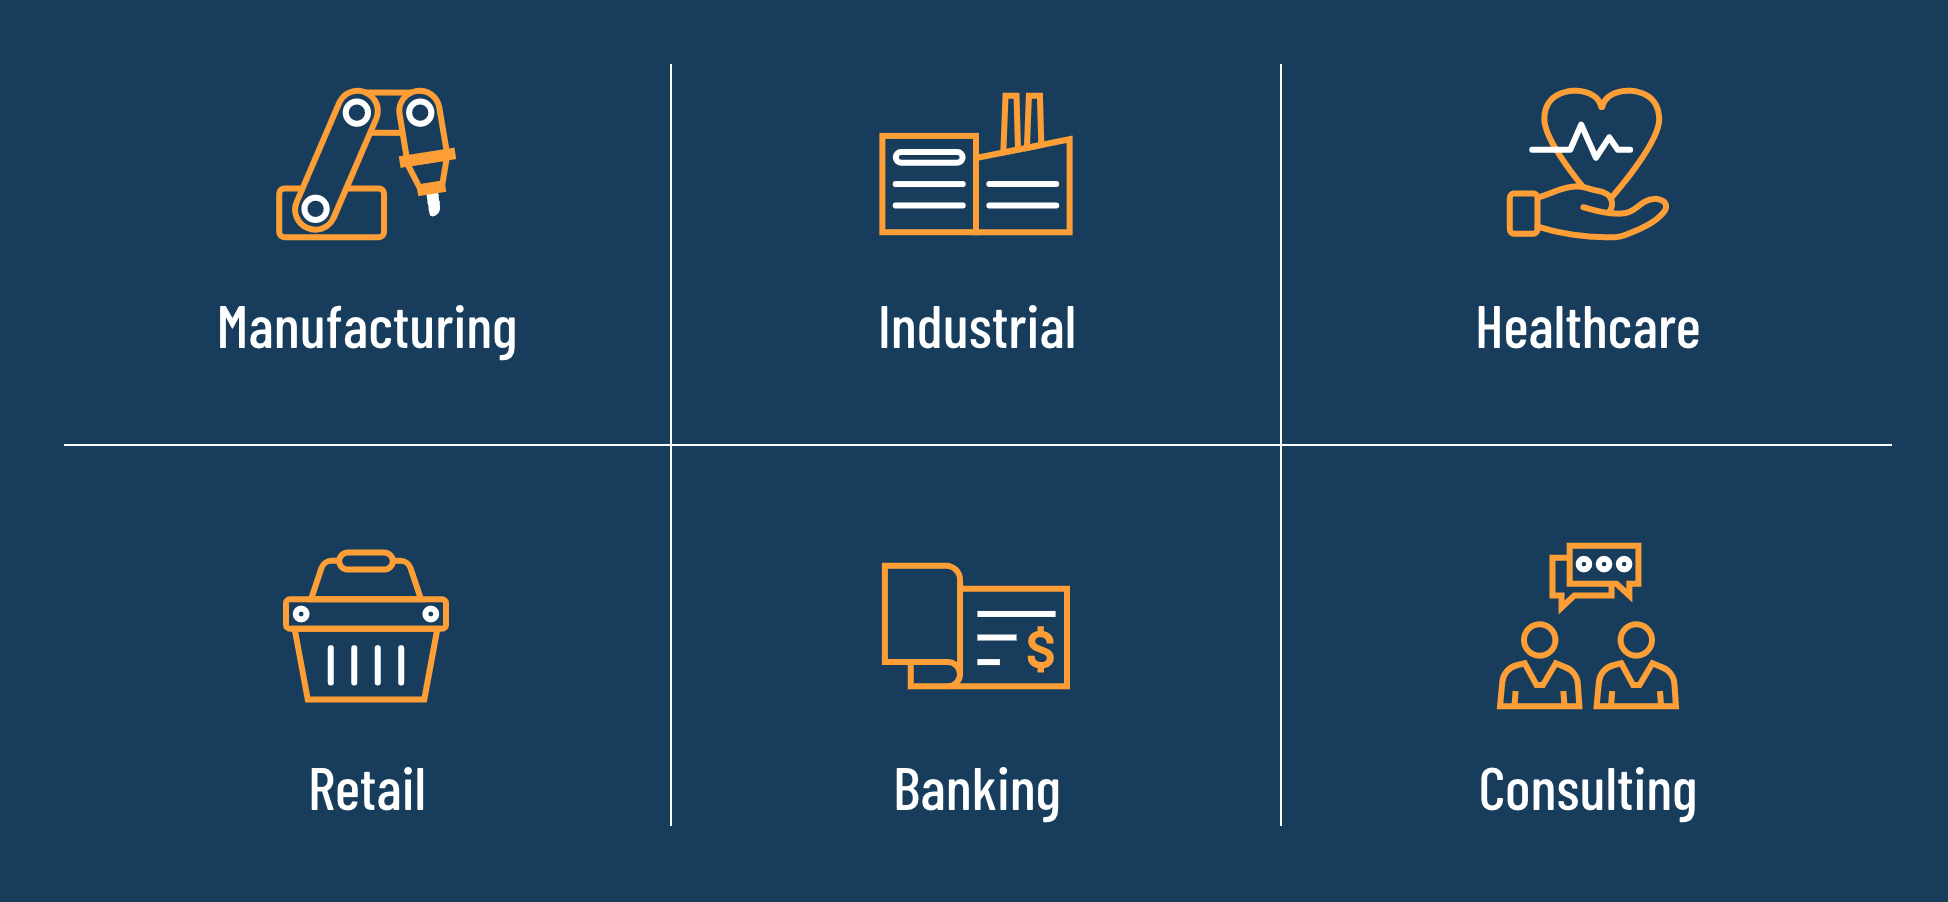 EC3 Icons Created by Data Driven Design - Retail, Industrial, Healthcare, Manfacturing Banking and Consulting